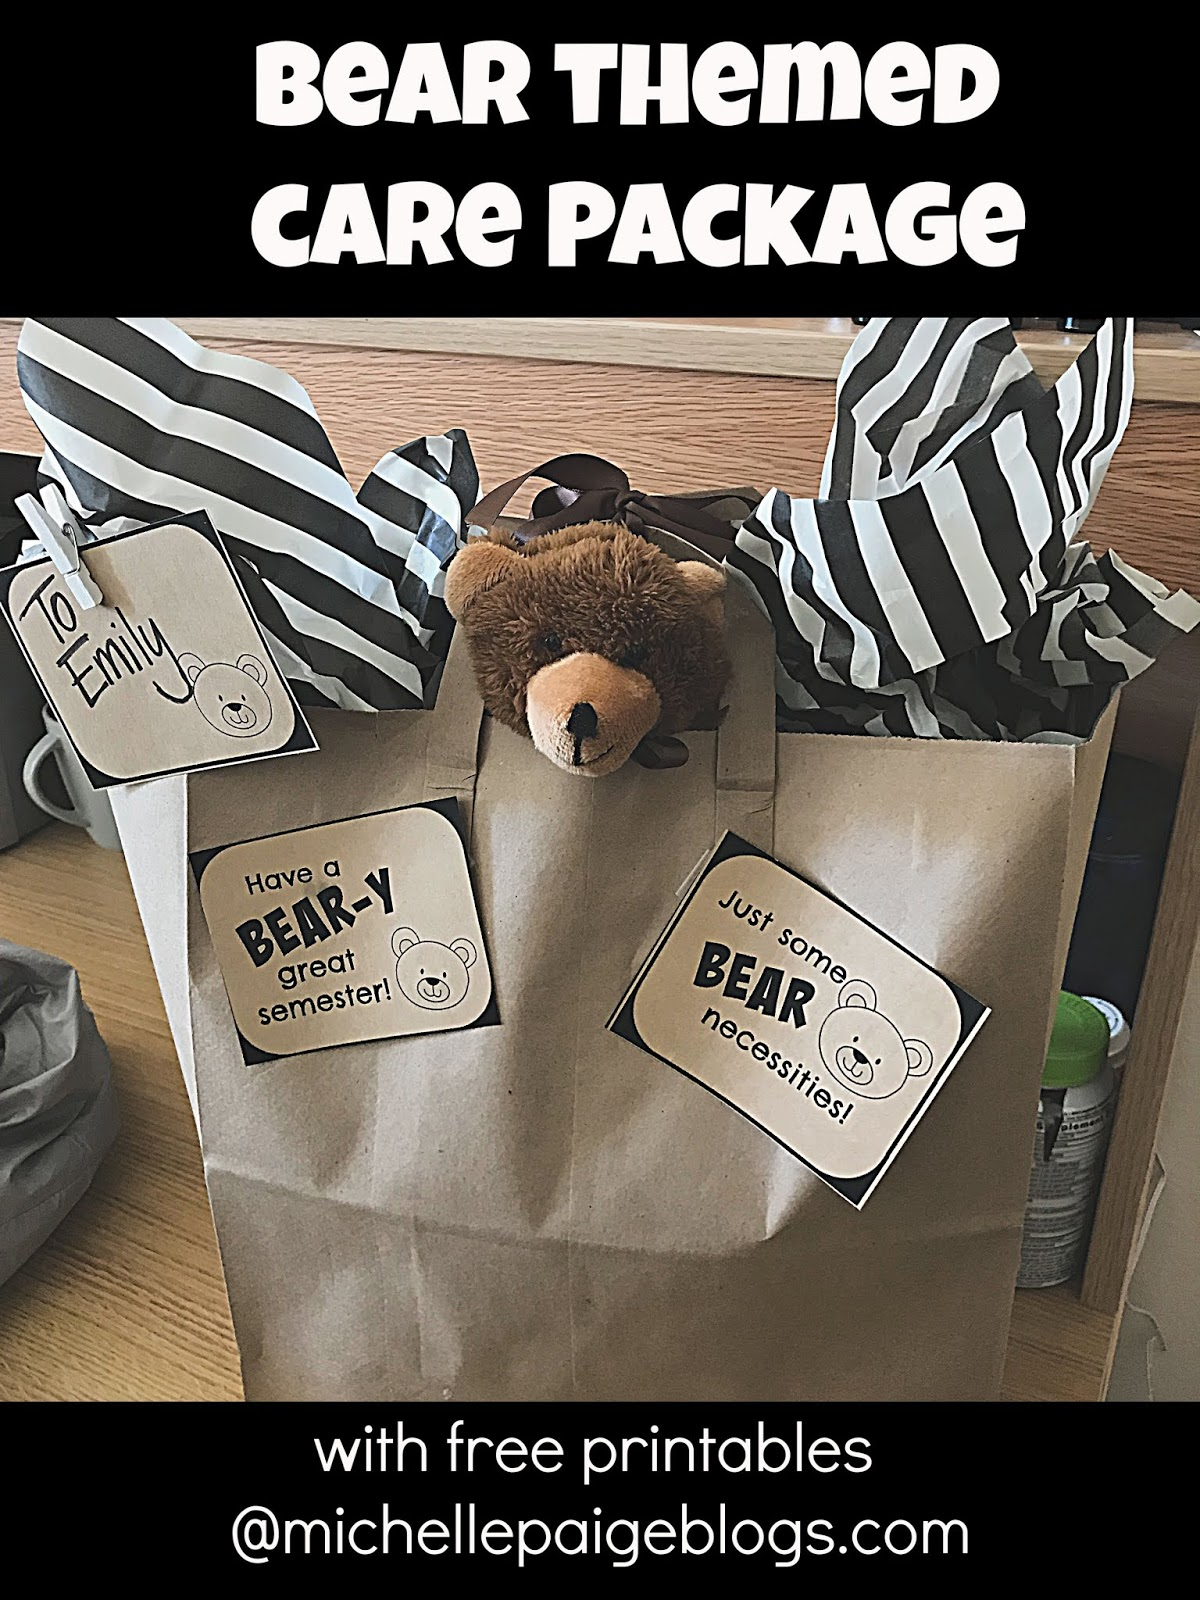 michelle paige blogs college care package bear pun themed